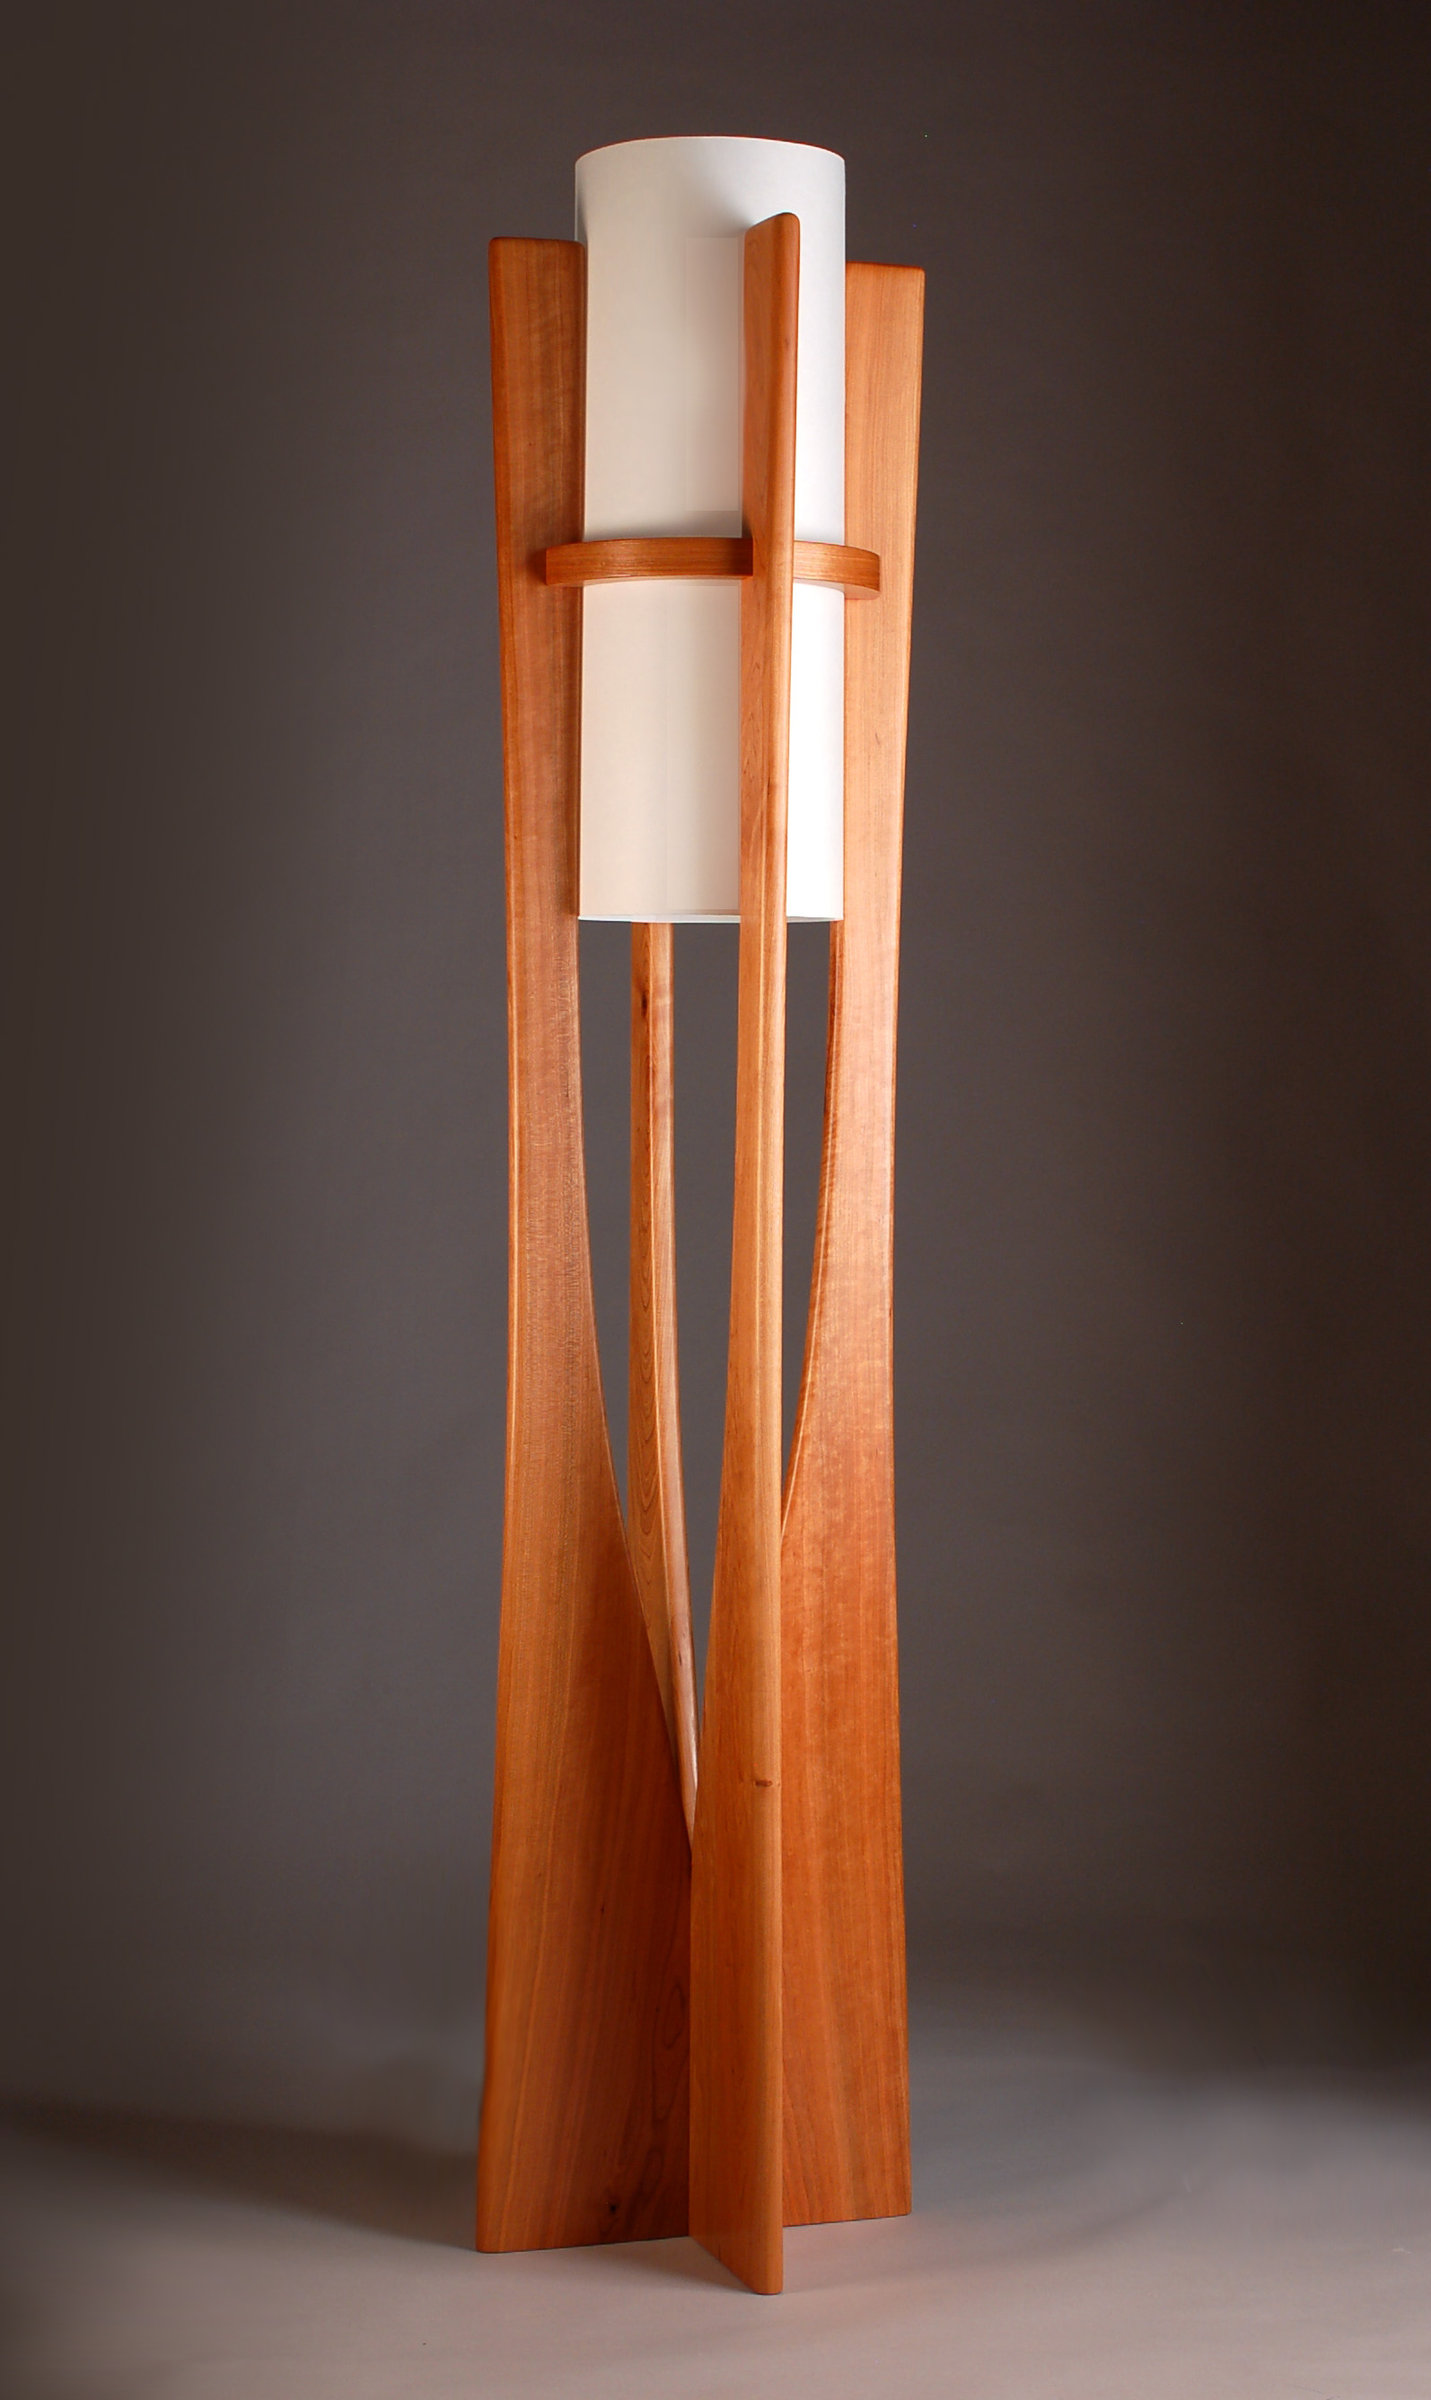 Apollo By Kyle Dallman Wood Floor Lamp Artful Home